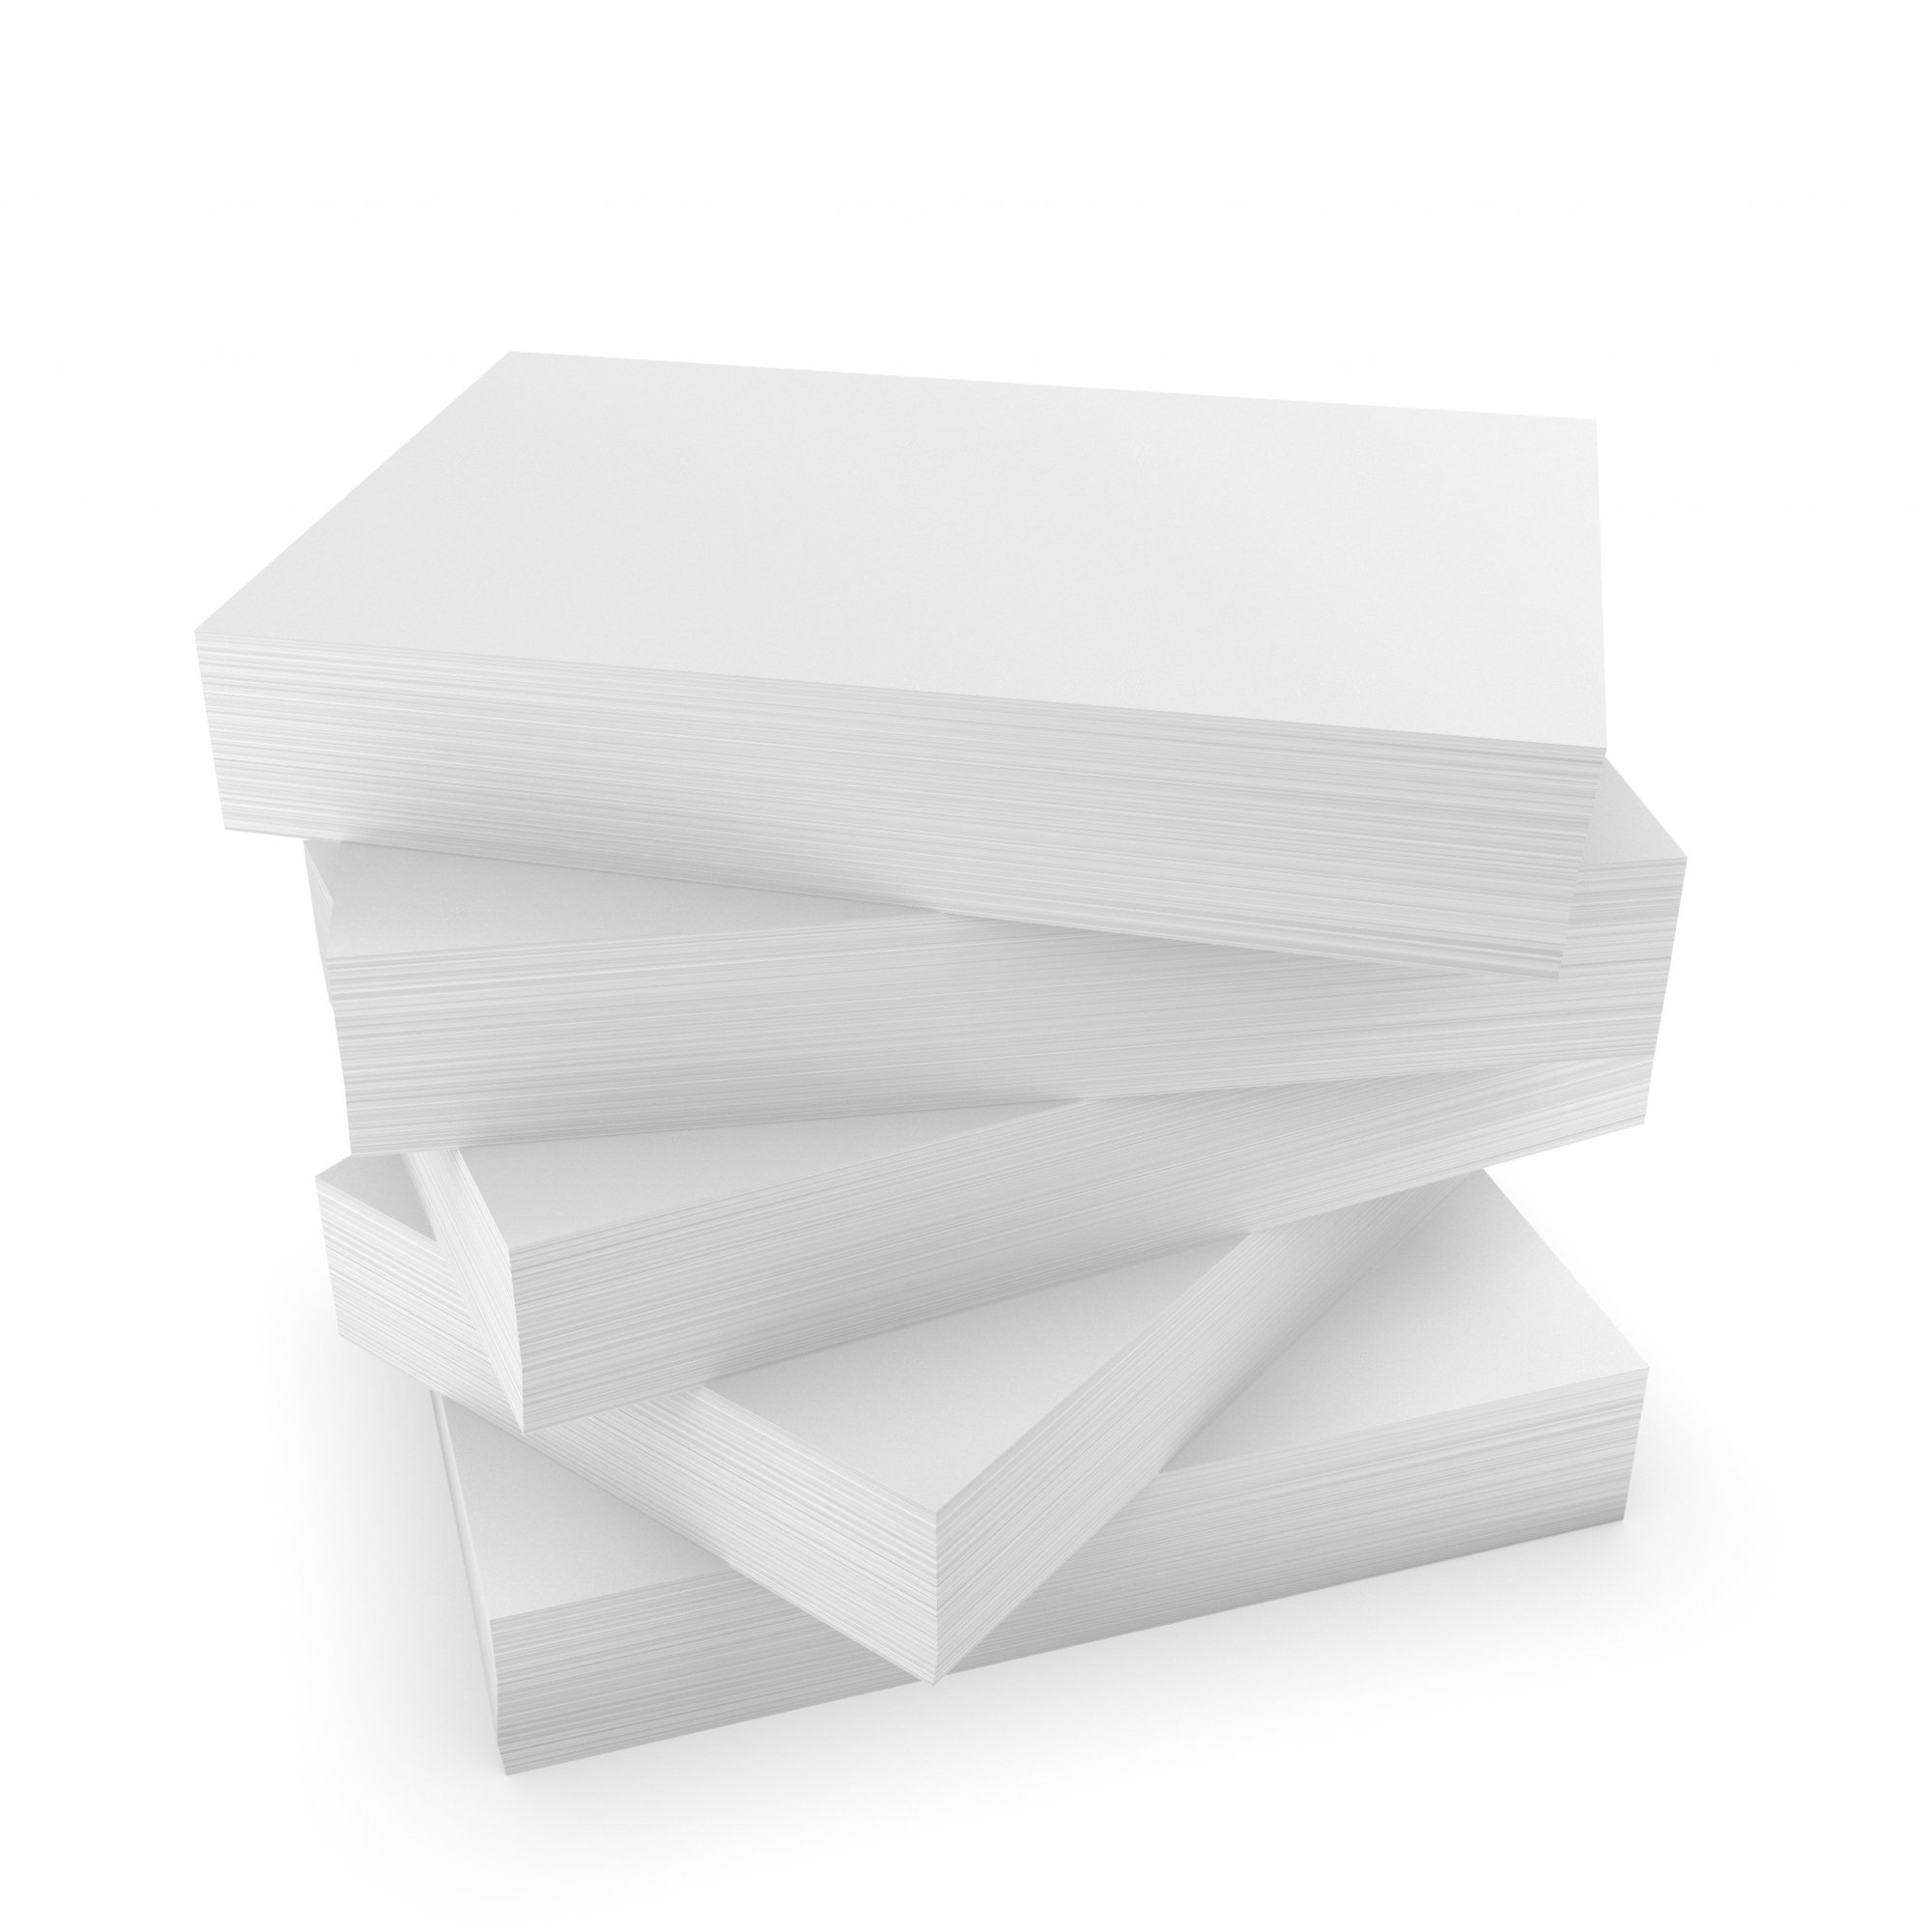 DEBRADALE DESIGNS - Unruled Thick Index Cards Blank - 4 x 6 Inches - White - 500 Cards - 5 Packages of 100 - Extra Heavy 140# Index Card Stock - 253 GSM - .0118 Thick by DEBRADALE DESIGNS